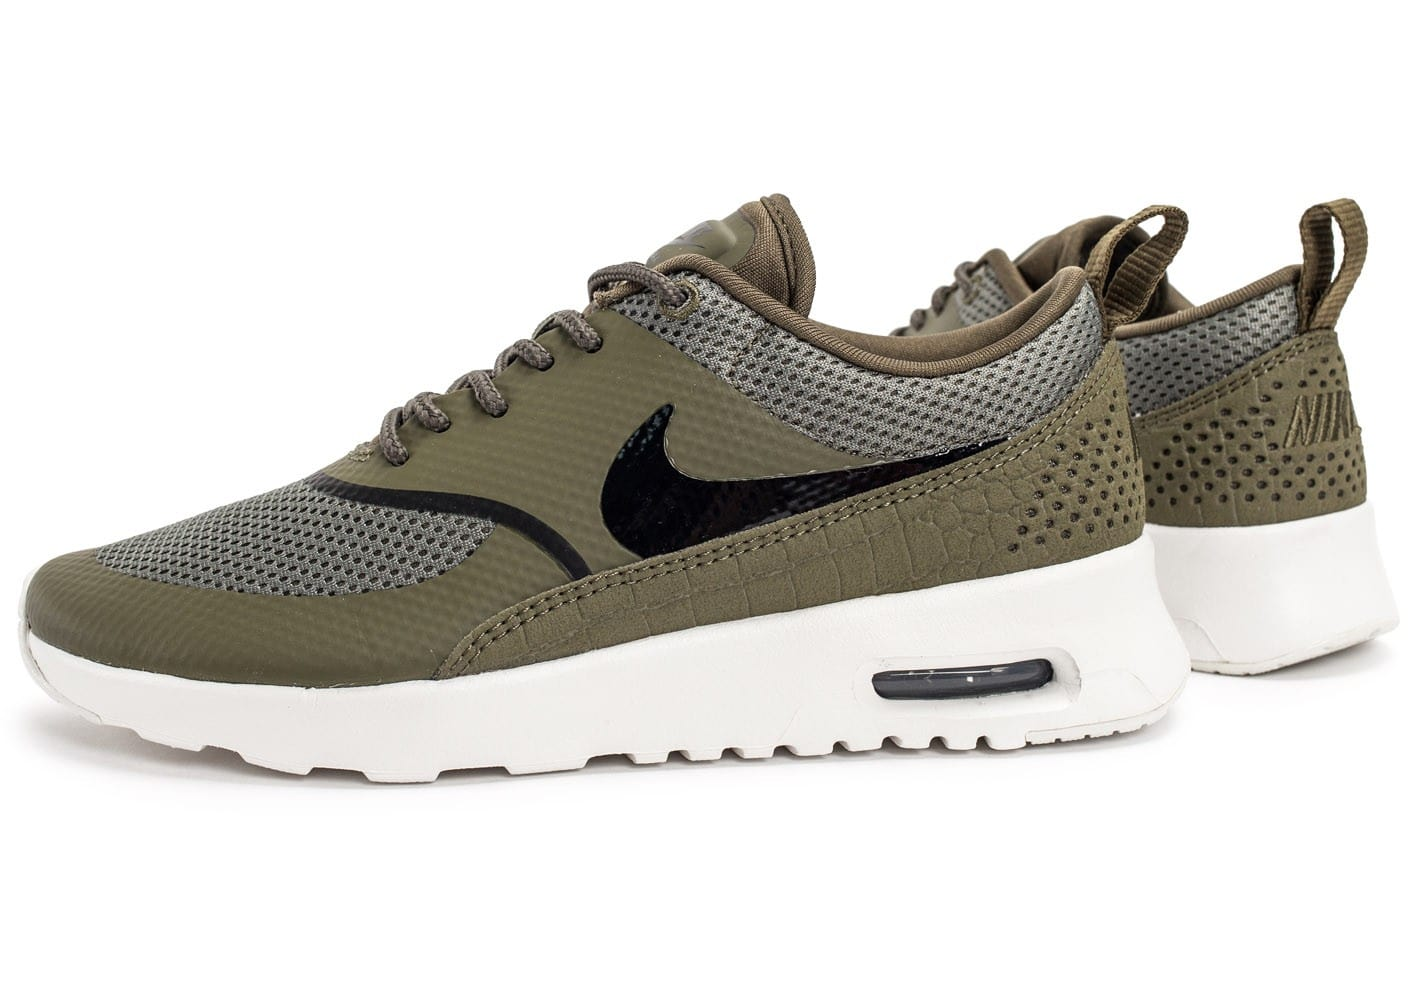 nike air max thea olive chaussures femme chausport. Black Bedroom Furniture Sets. Home Design Ideas